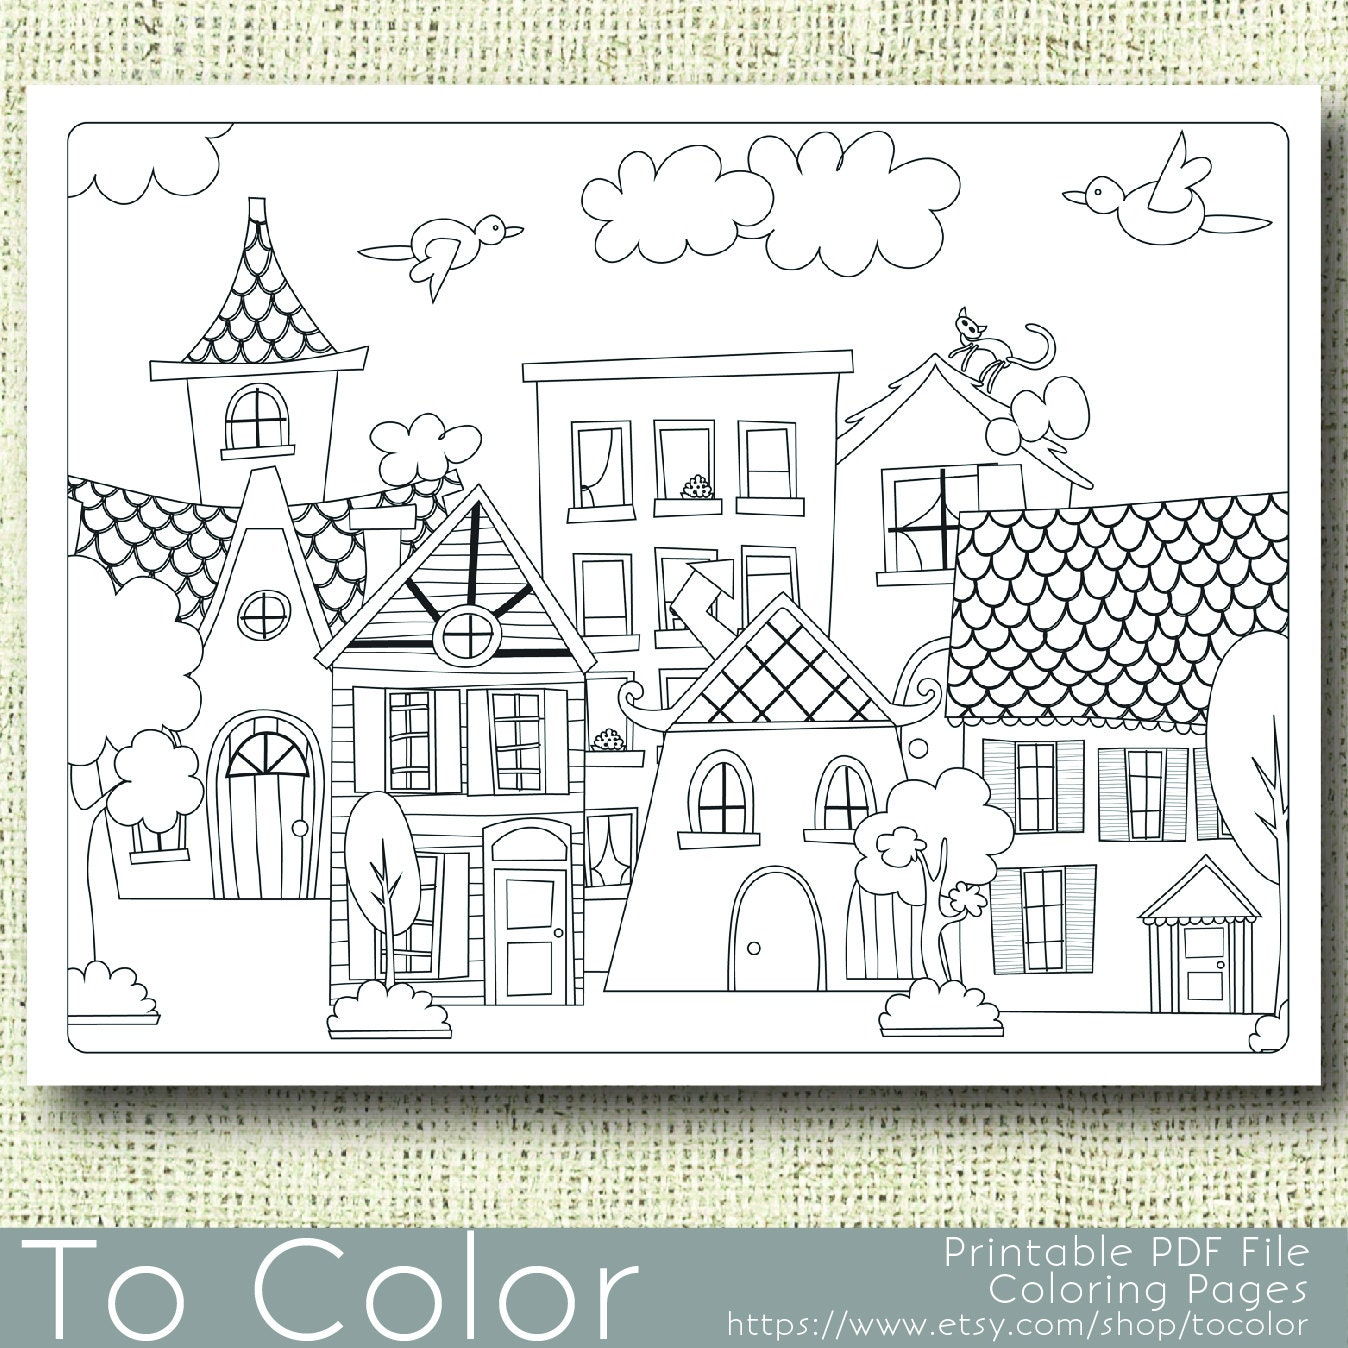 Coloring Pages For Grown Ups Pdf : Printable houses coloring page for adults pdf jpg instant